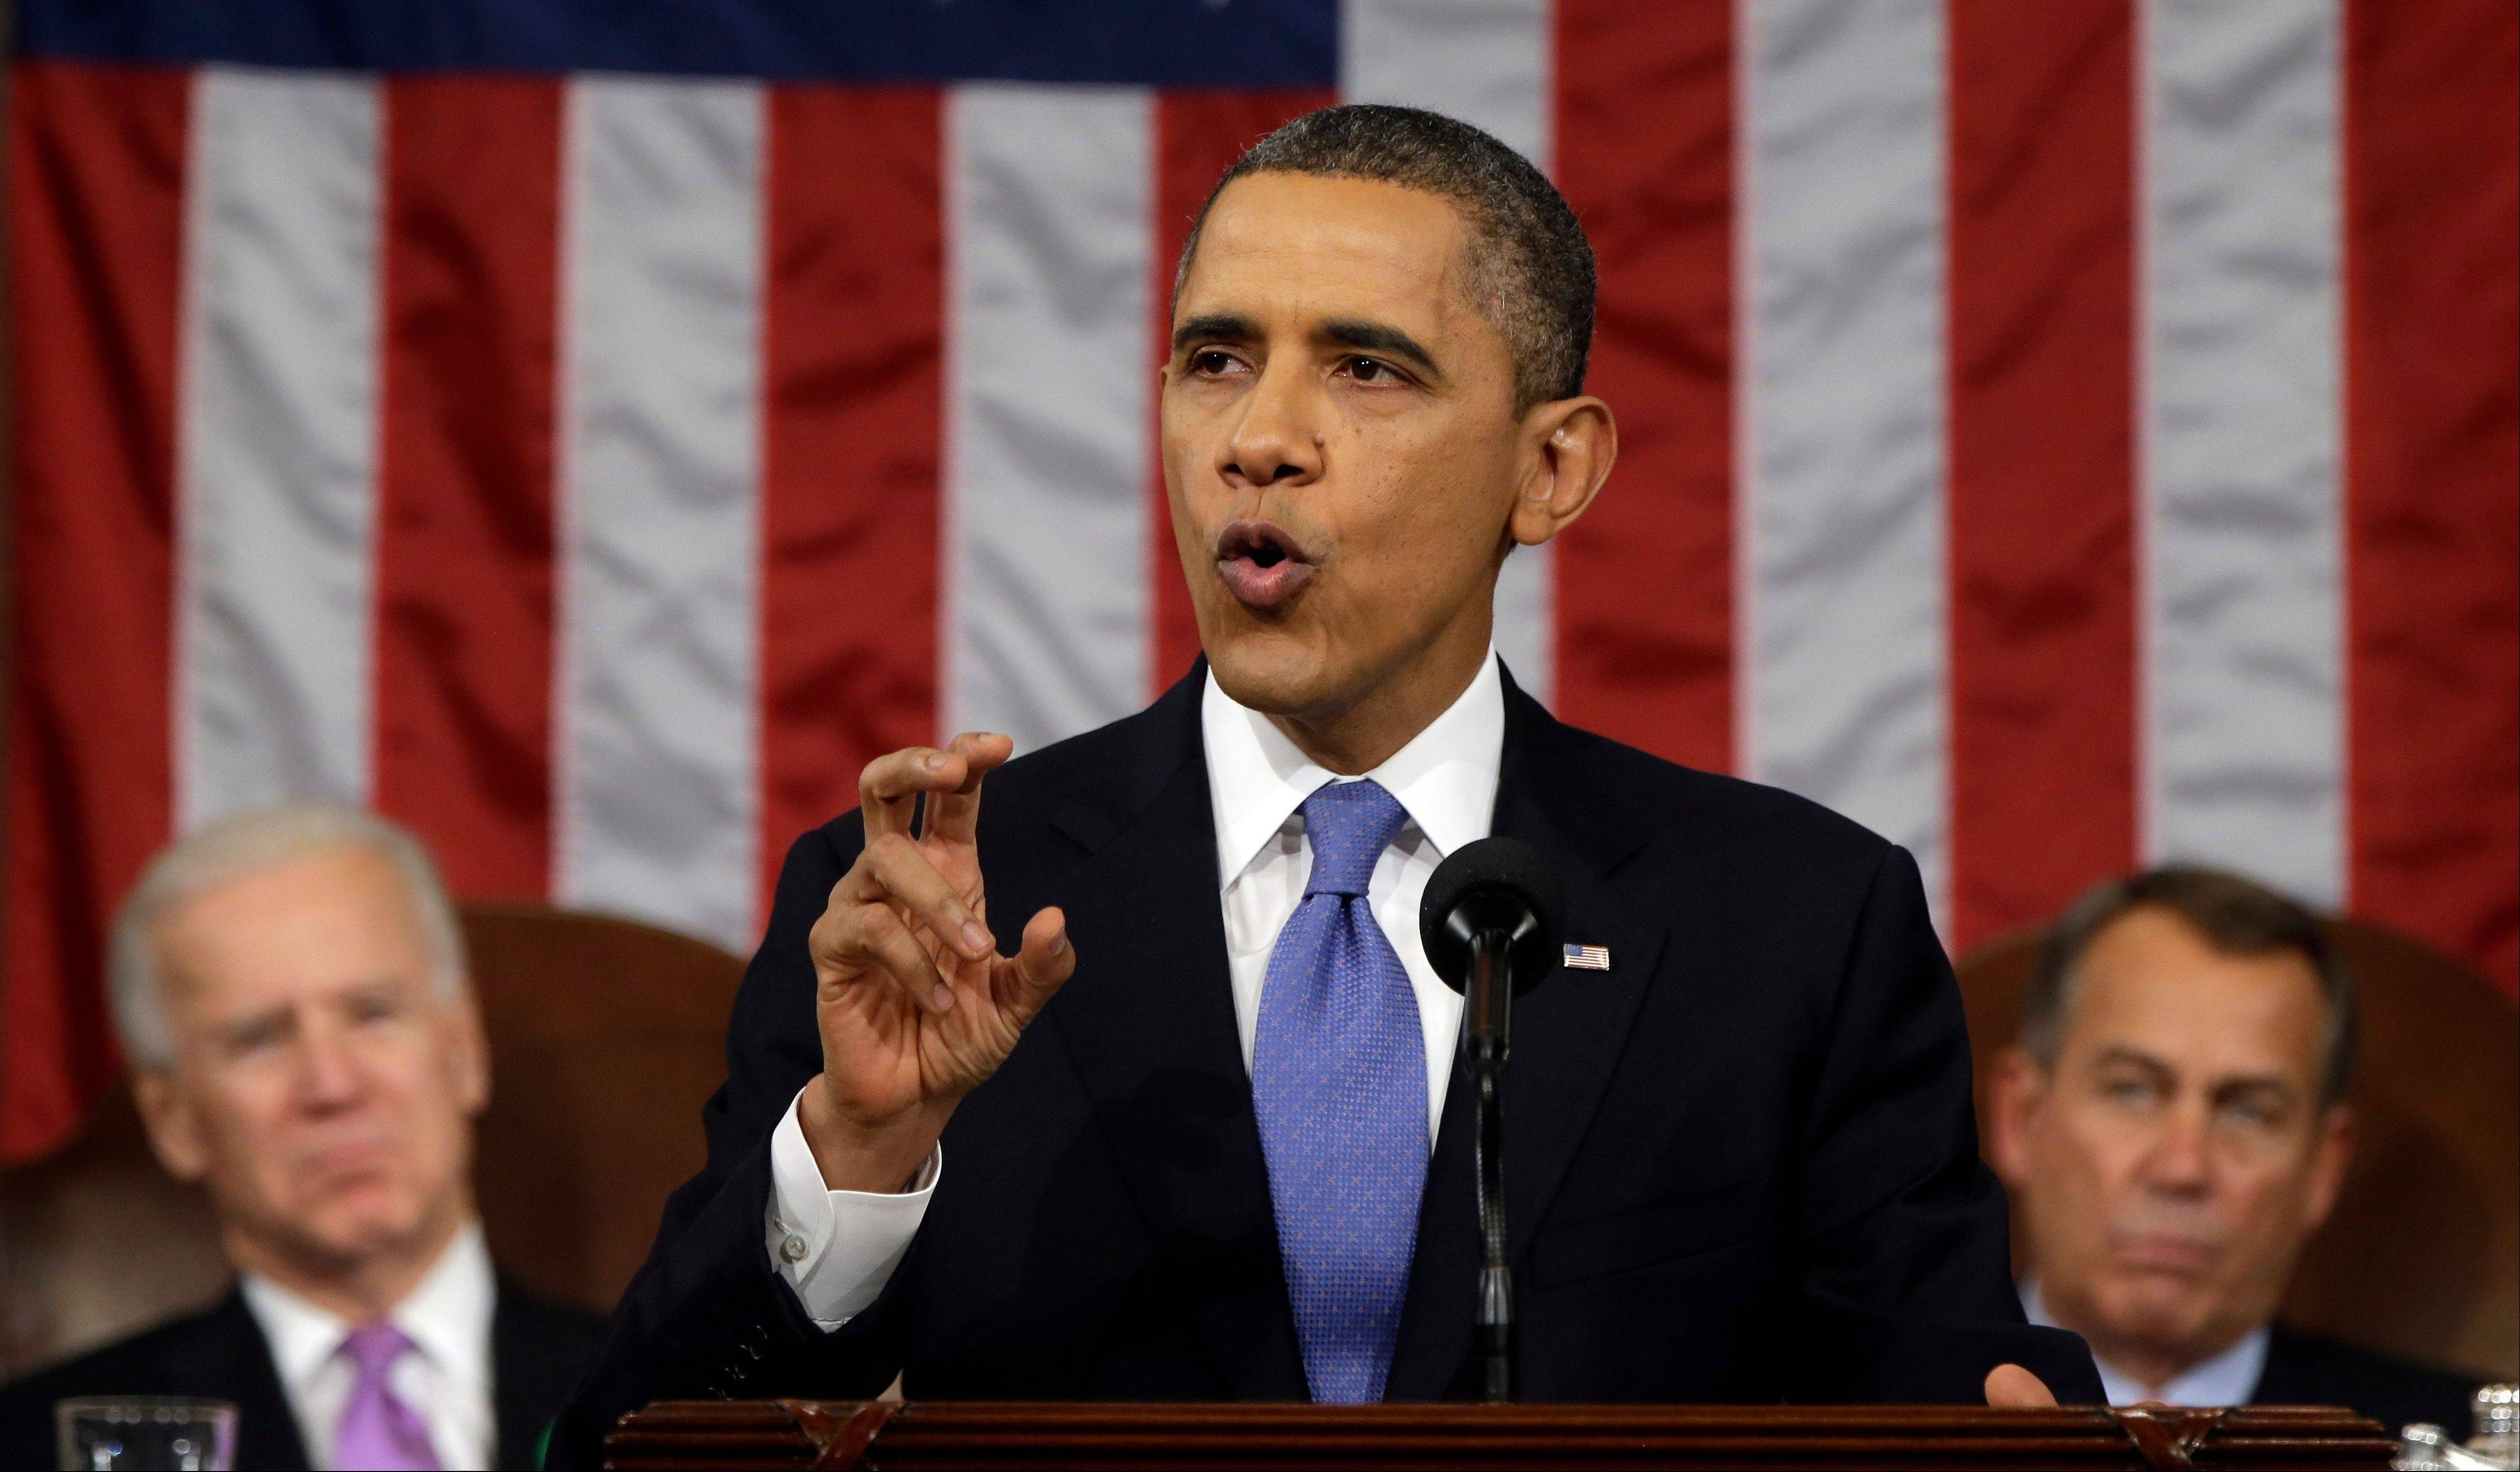 Text of Obama's State of the Union address